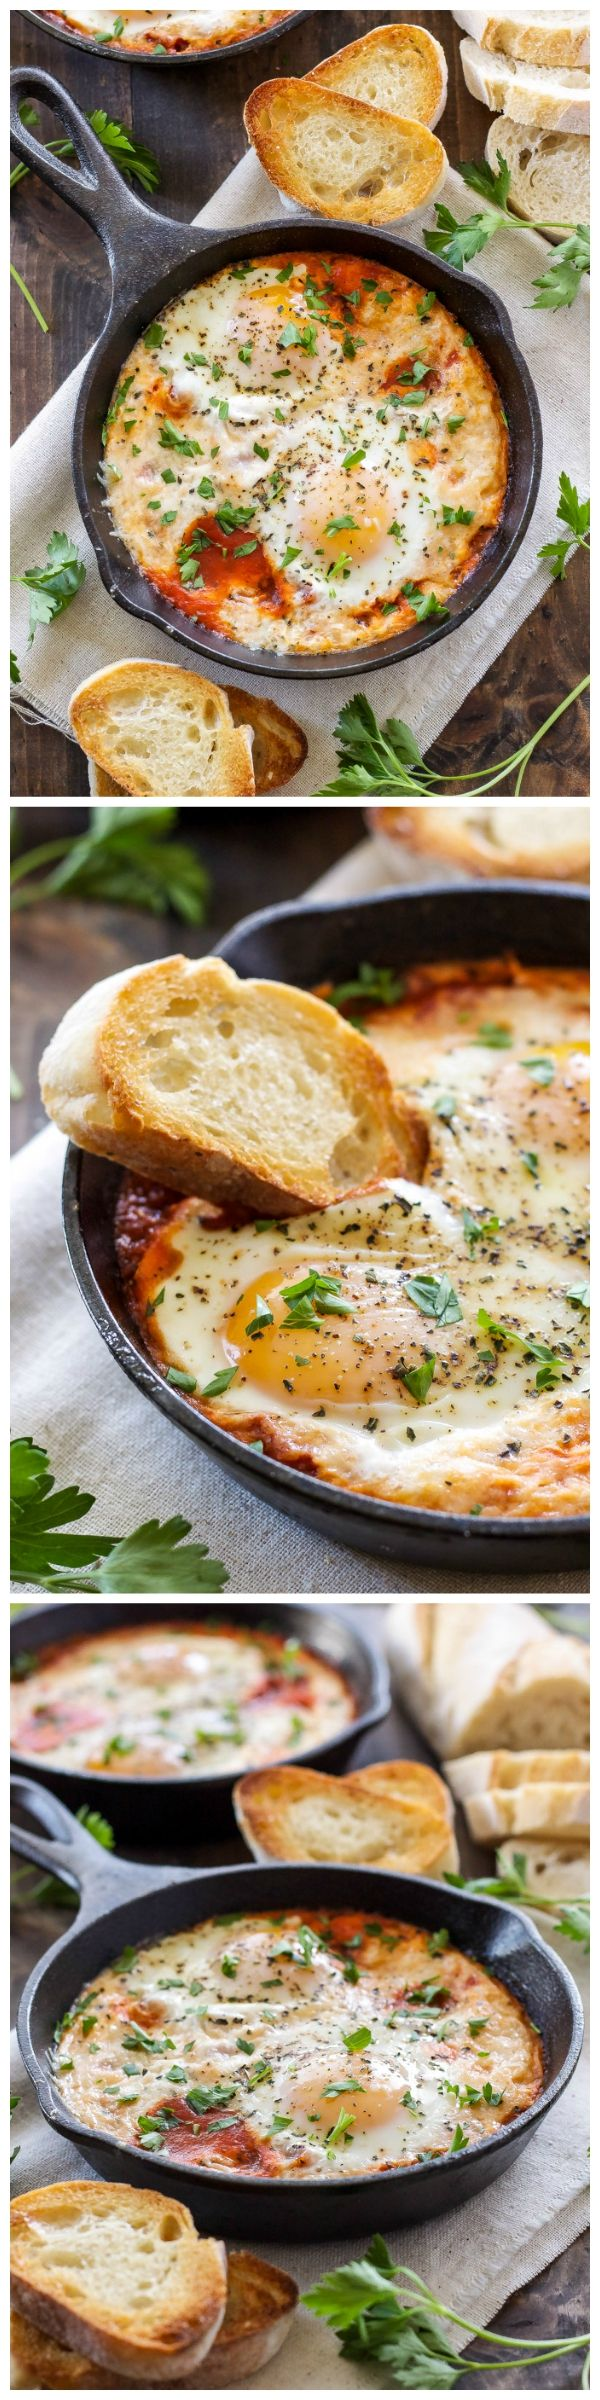 Three ingredients are all you need to make these Italian inspired Baked Eggs in Marinara Sauce!